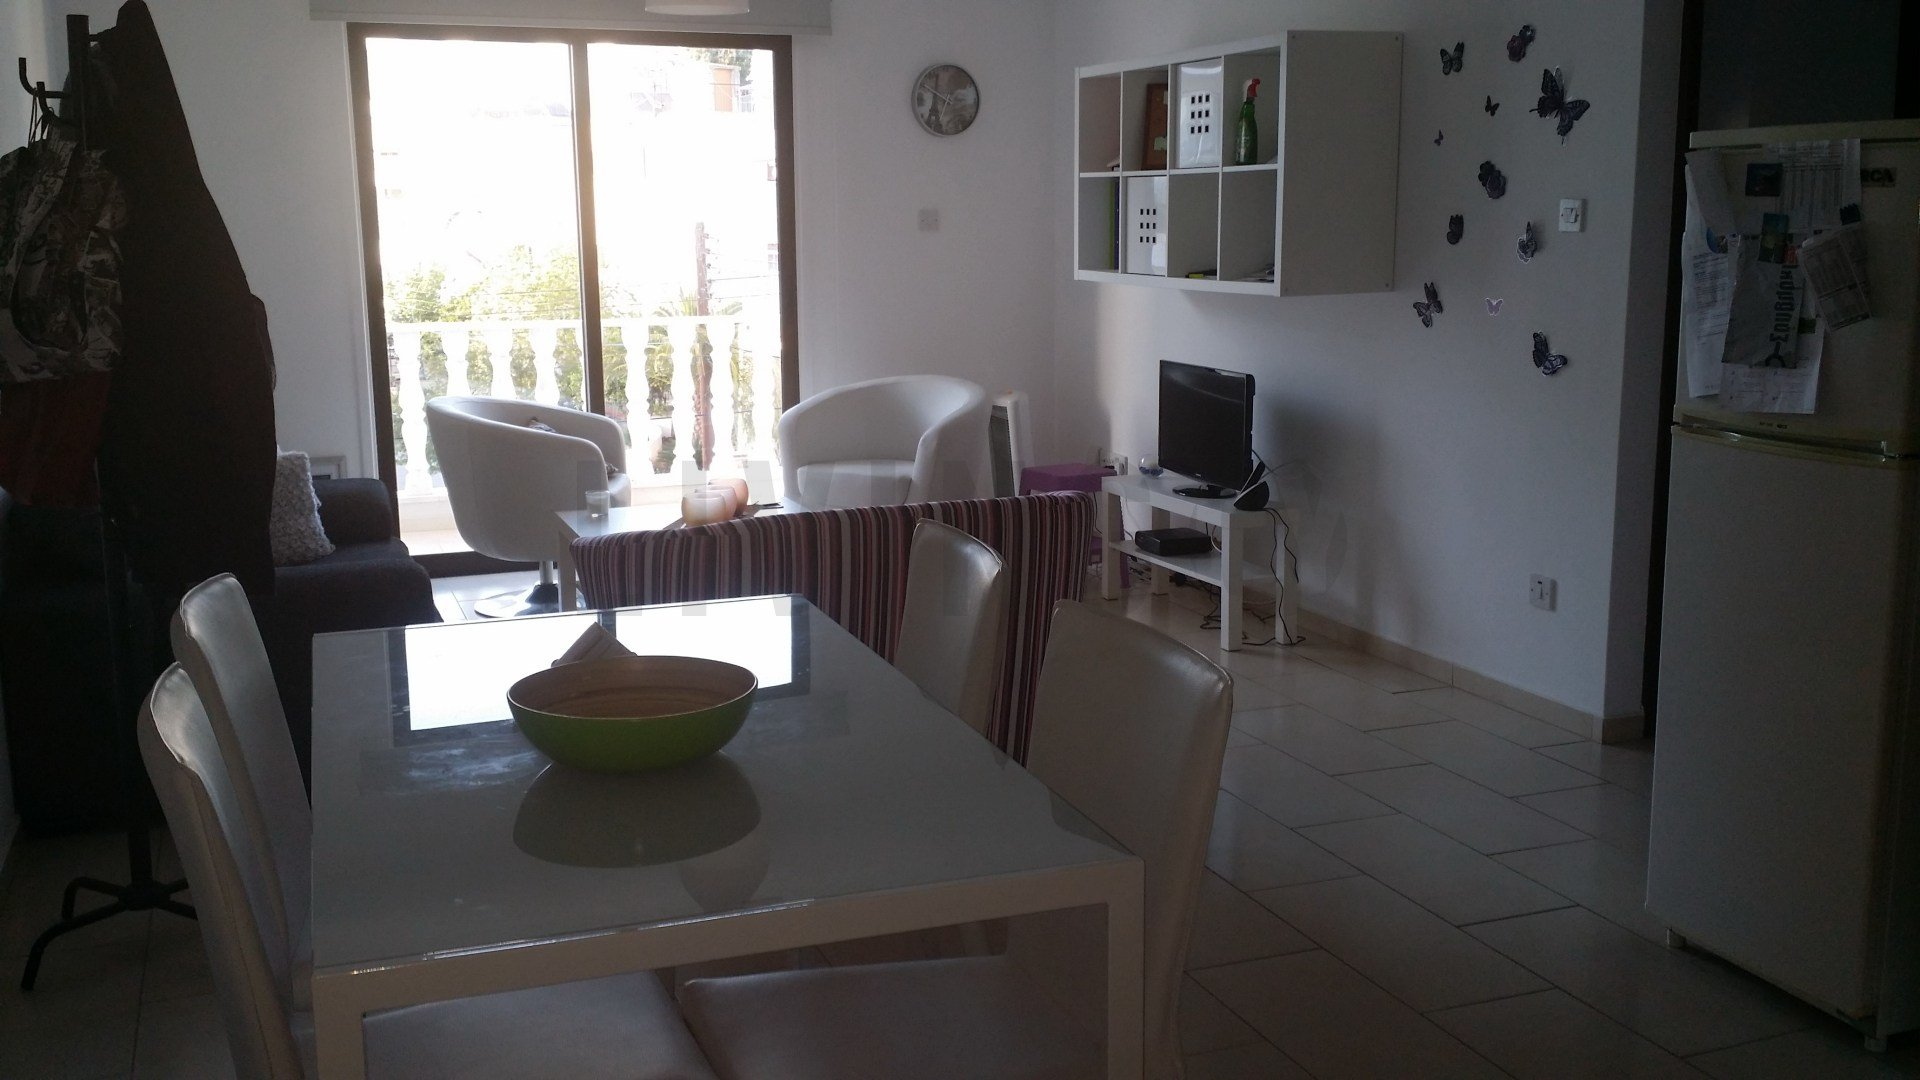 Best 1 Bedroom Flat To Rent In City Center Nicosia With Pictures Original 1024 x 768